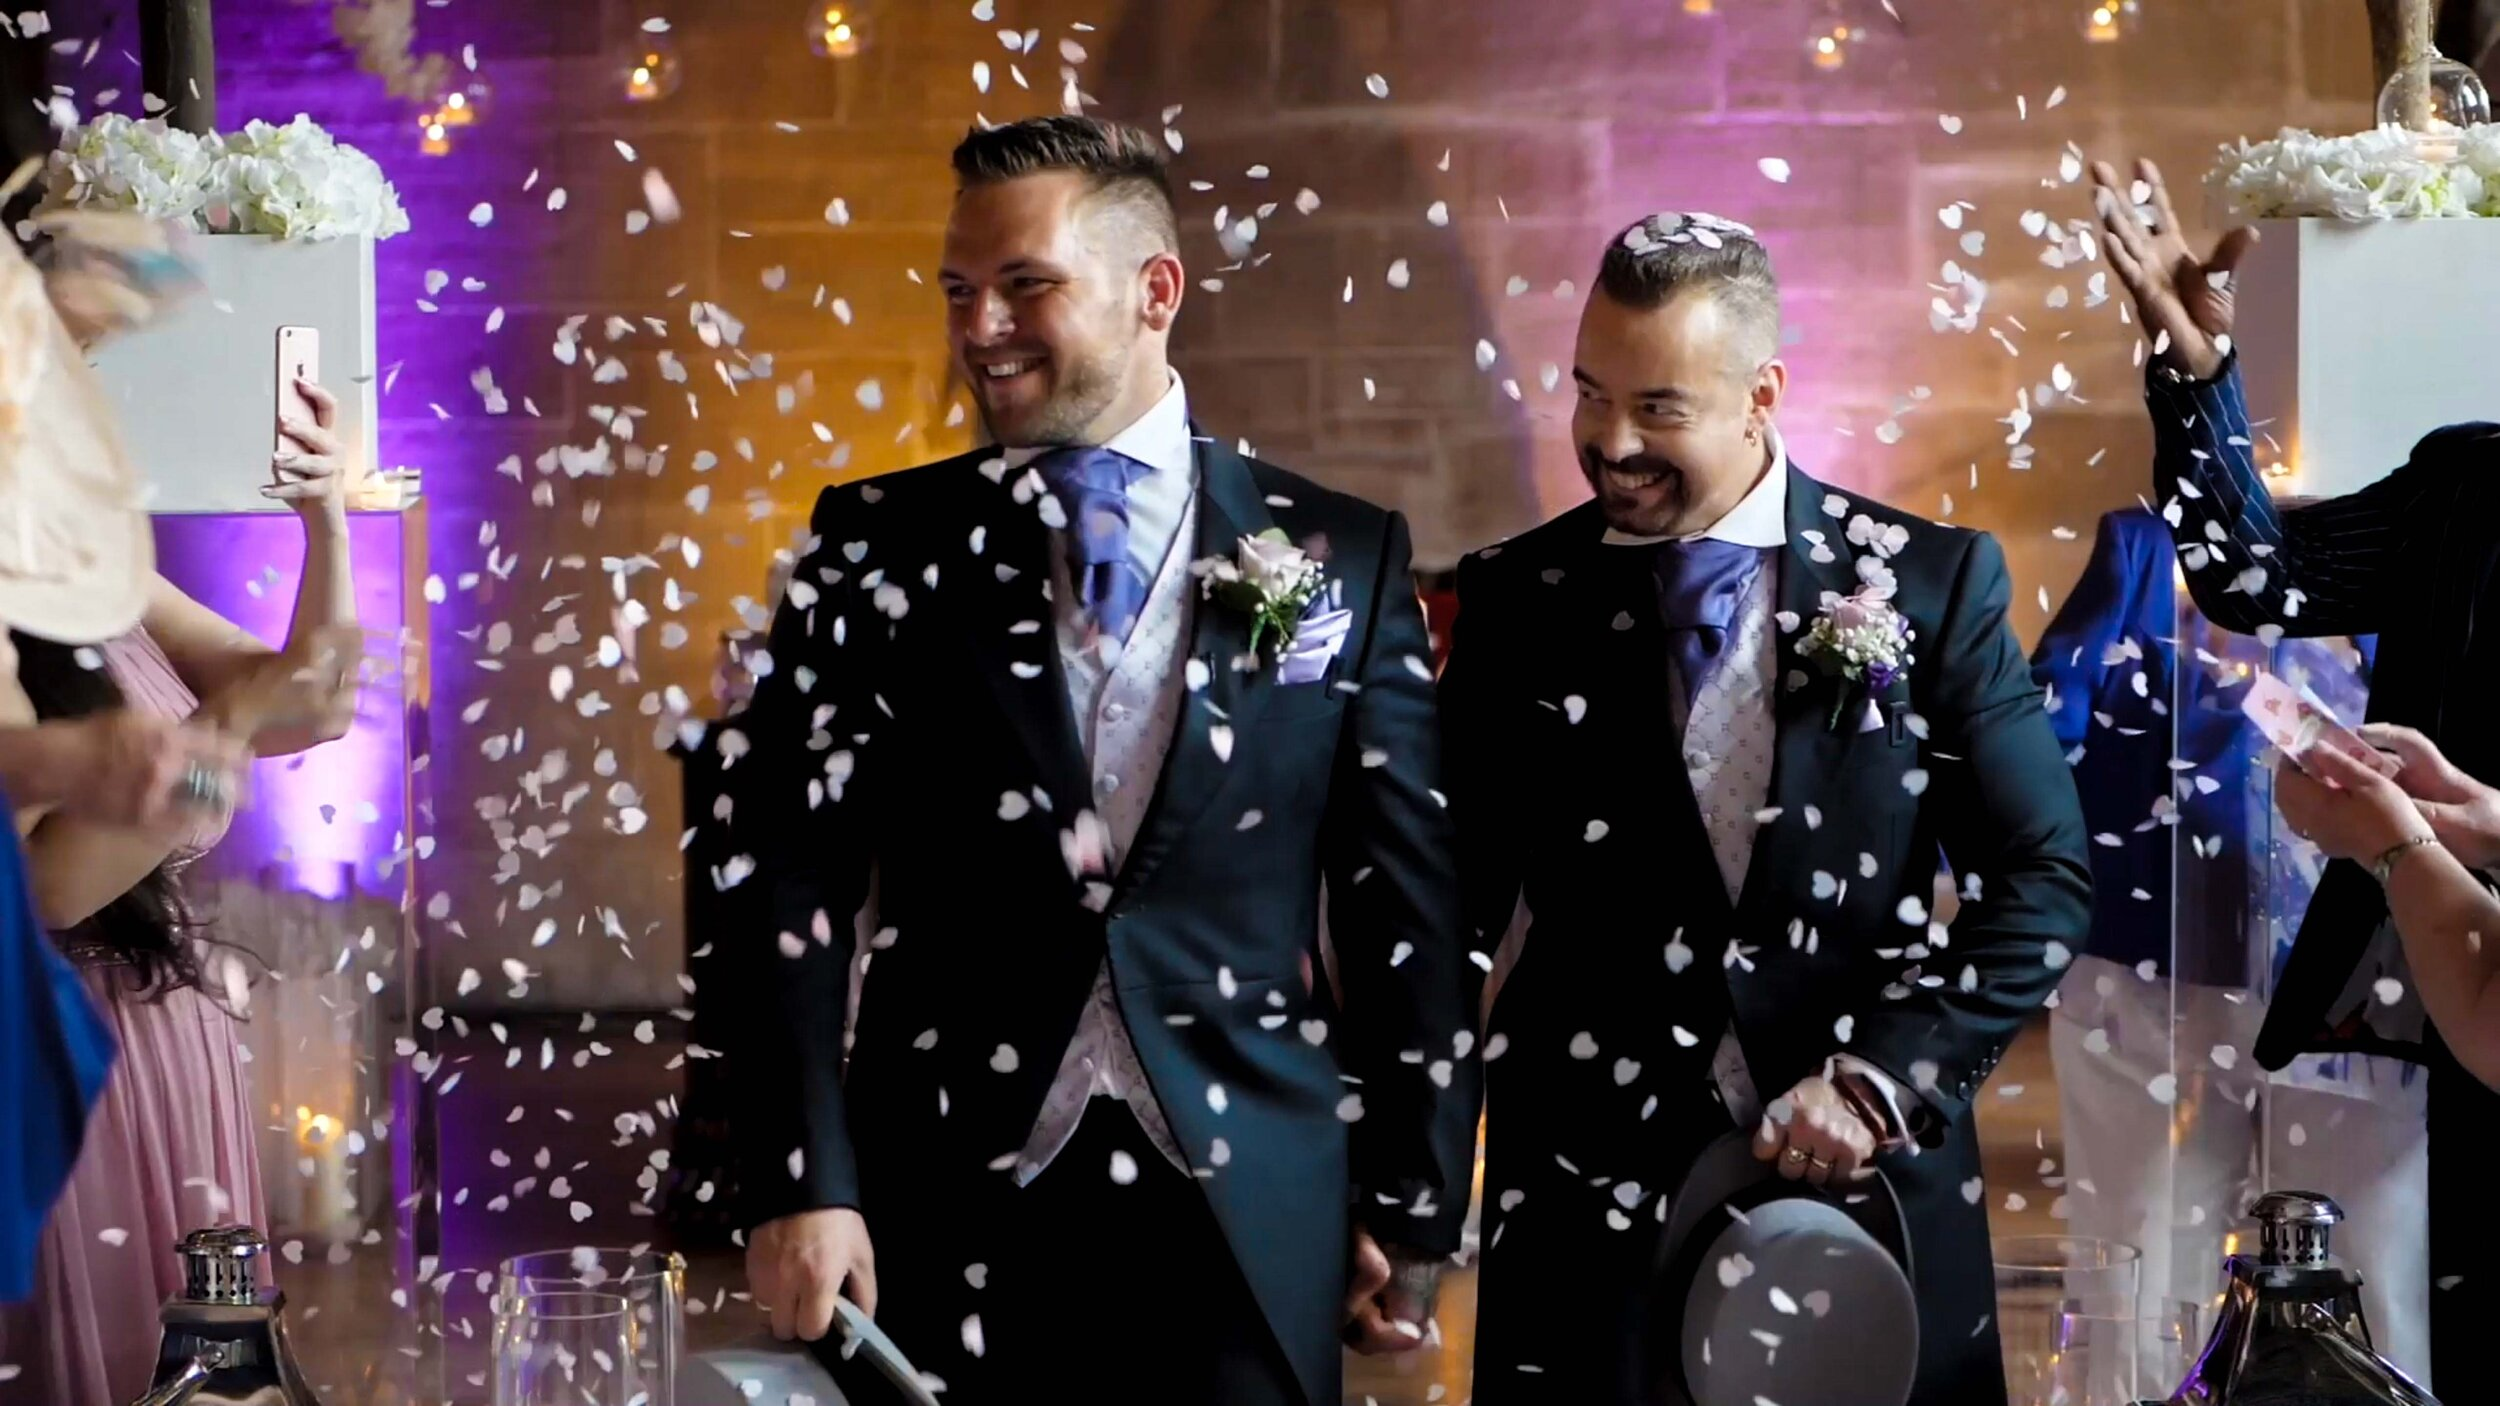 Jason and John, the bride and groom, share a walk down the aisle at Peckforton Castle. Captured by North West Wedding Videographer, Craig McKenna.